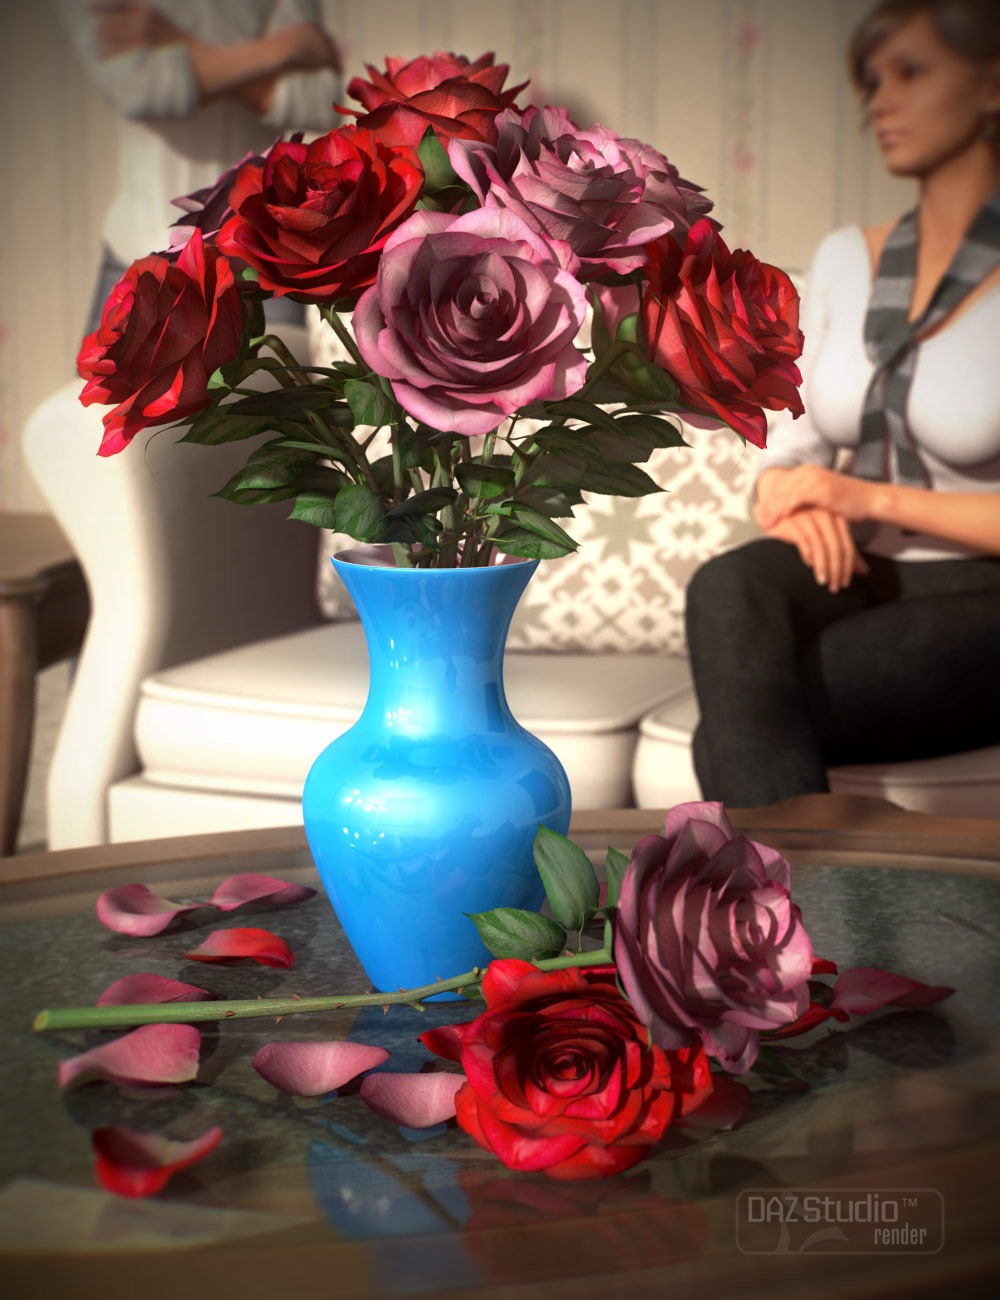 The DAZ Rose by: , 3D Models by Daz 3D